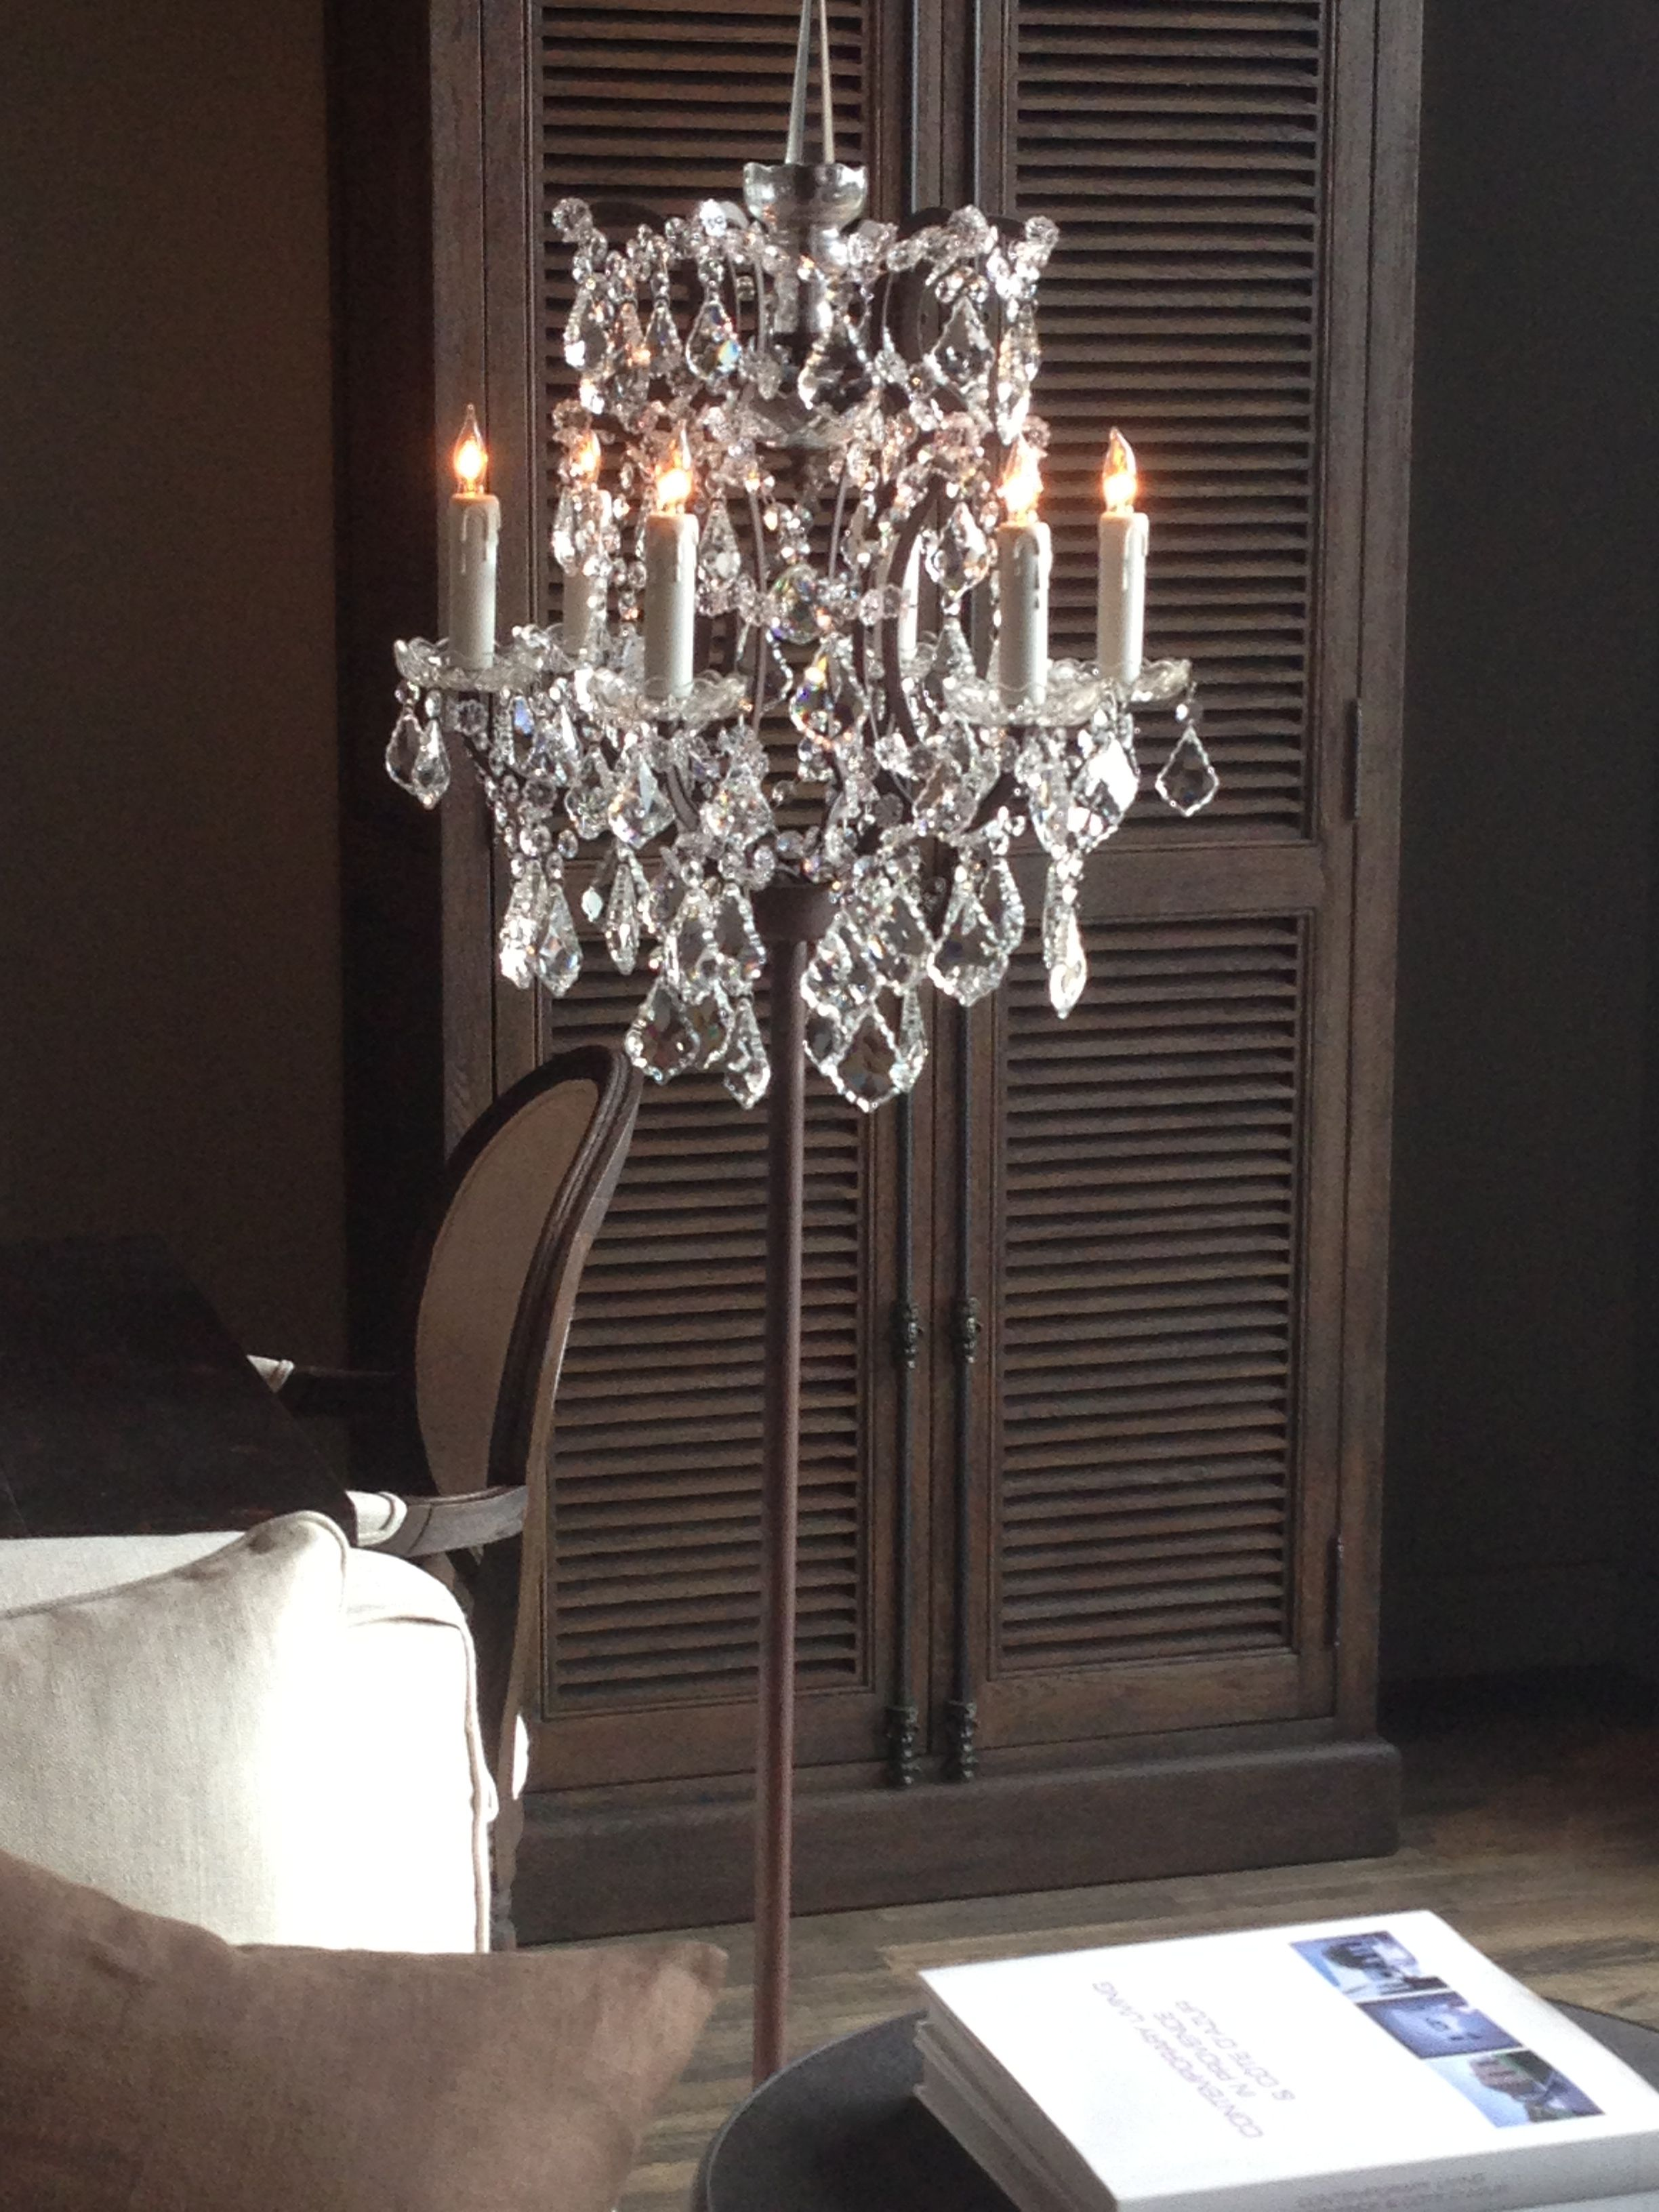 Chandelier floor lamp I own this floor lamp and it is so